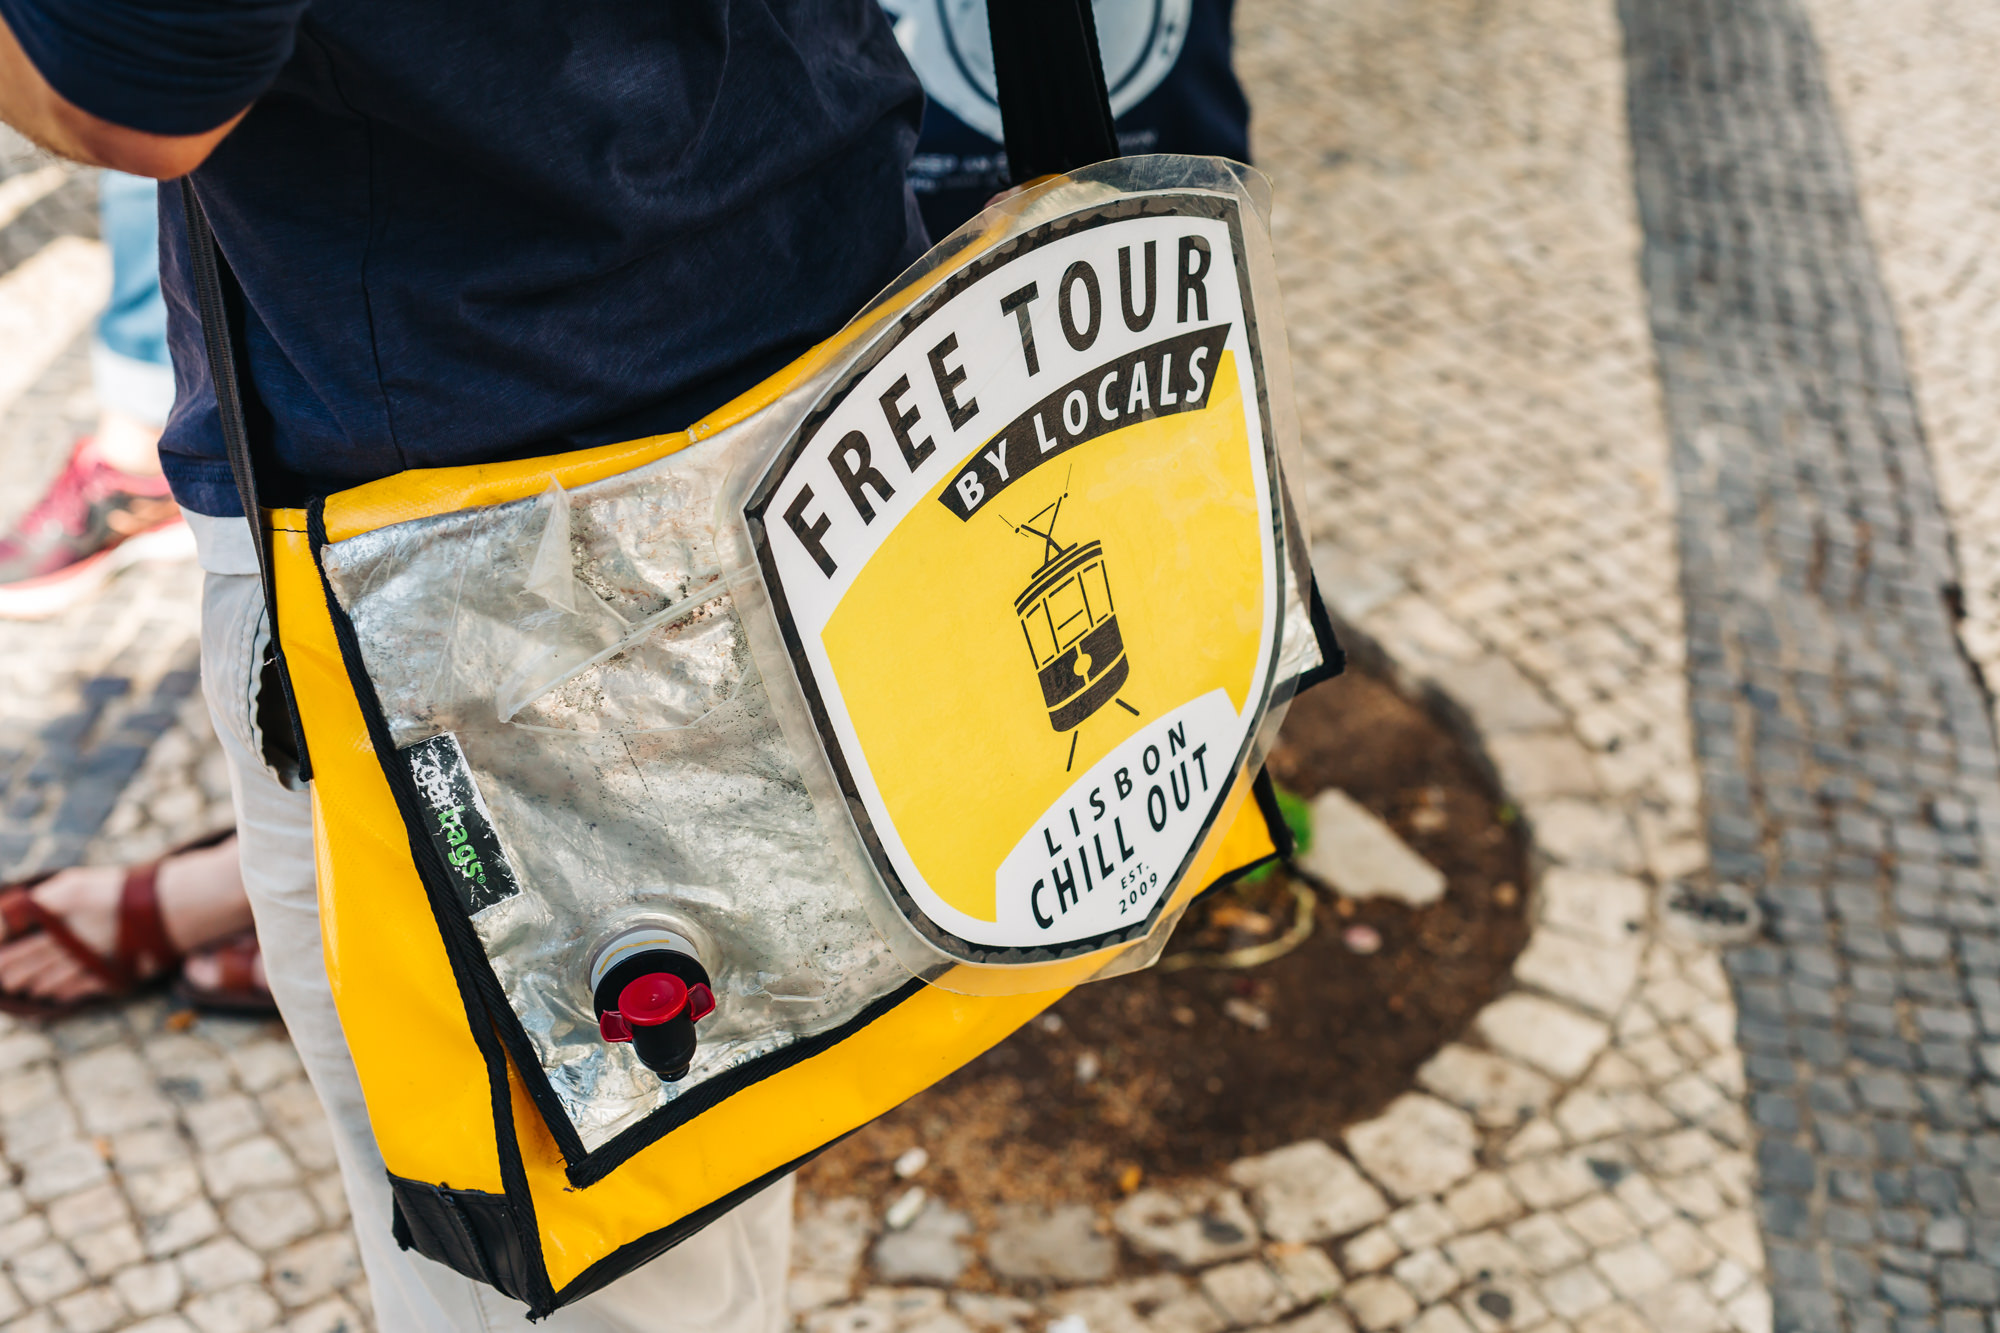 Look for the tour guides wearing a yellow bag